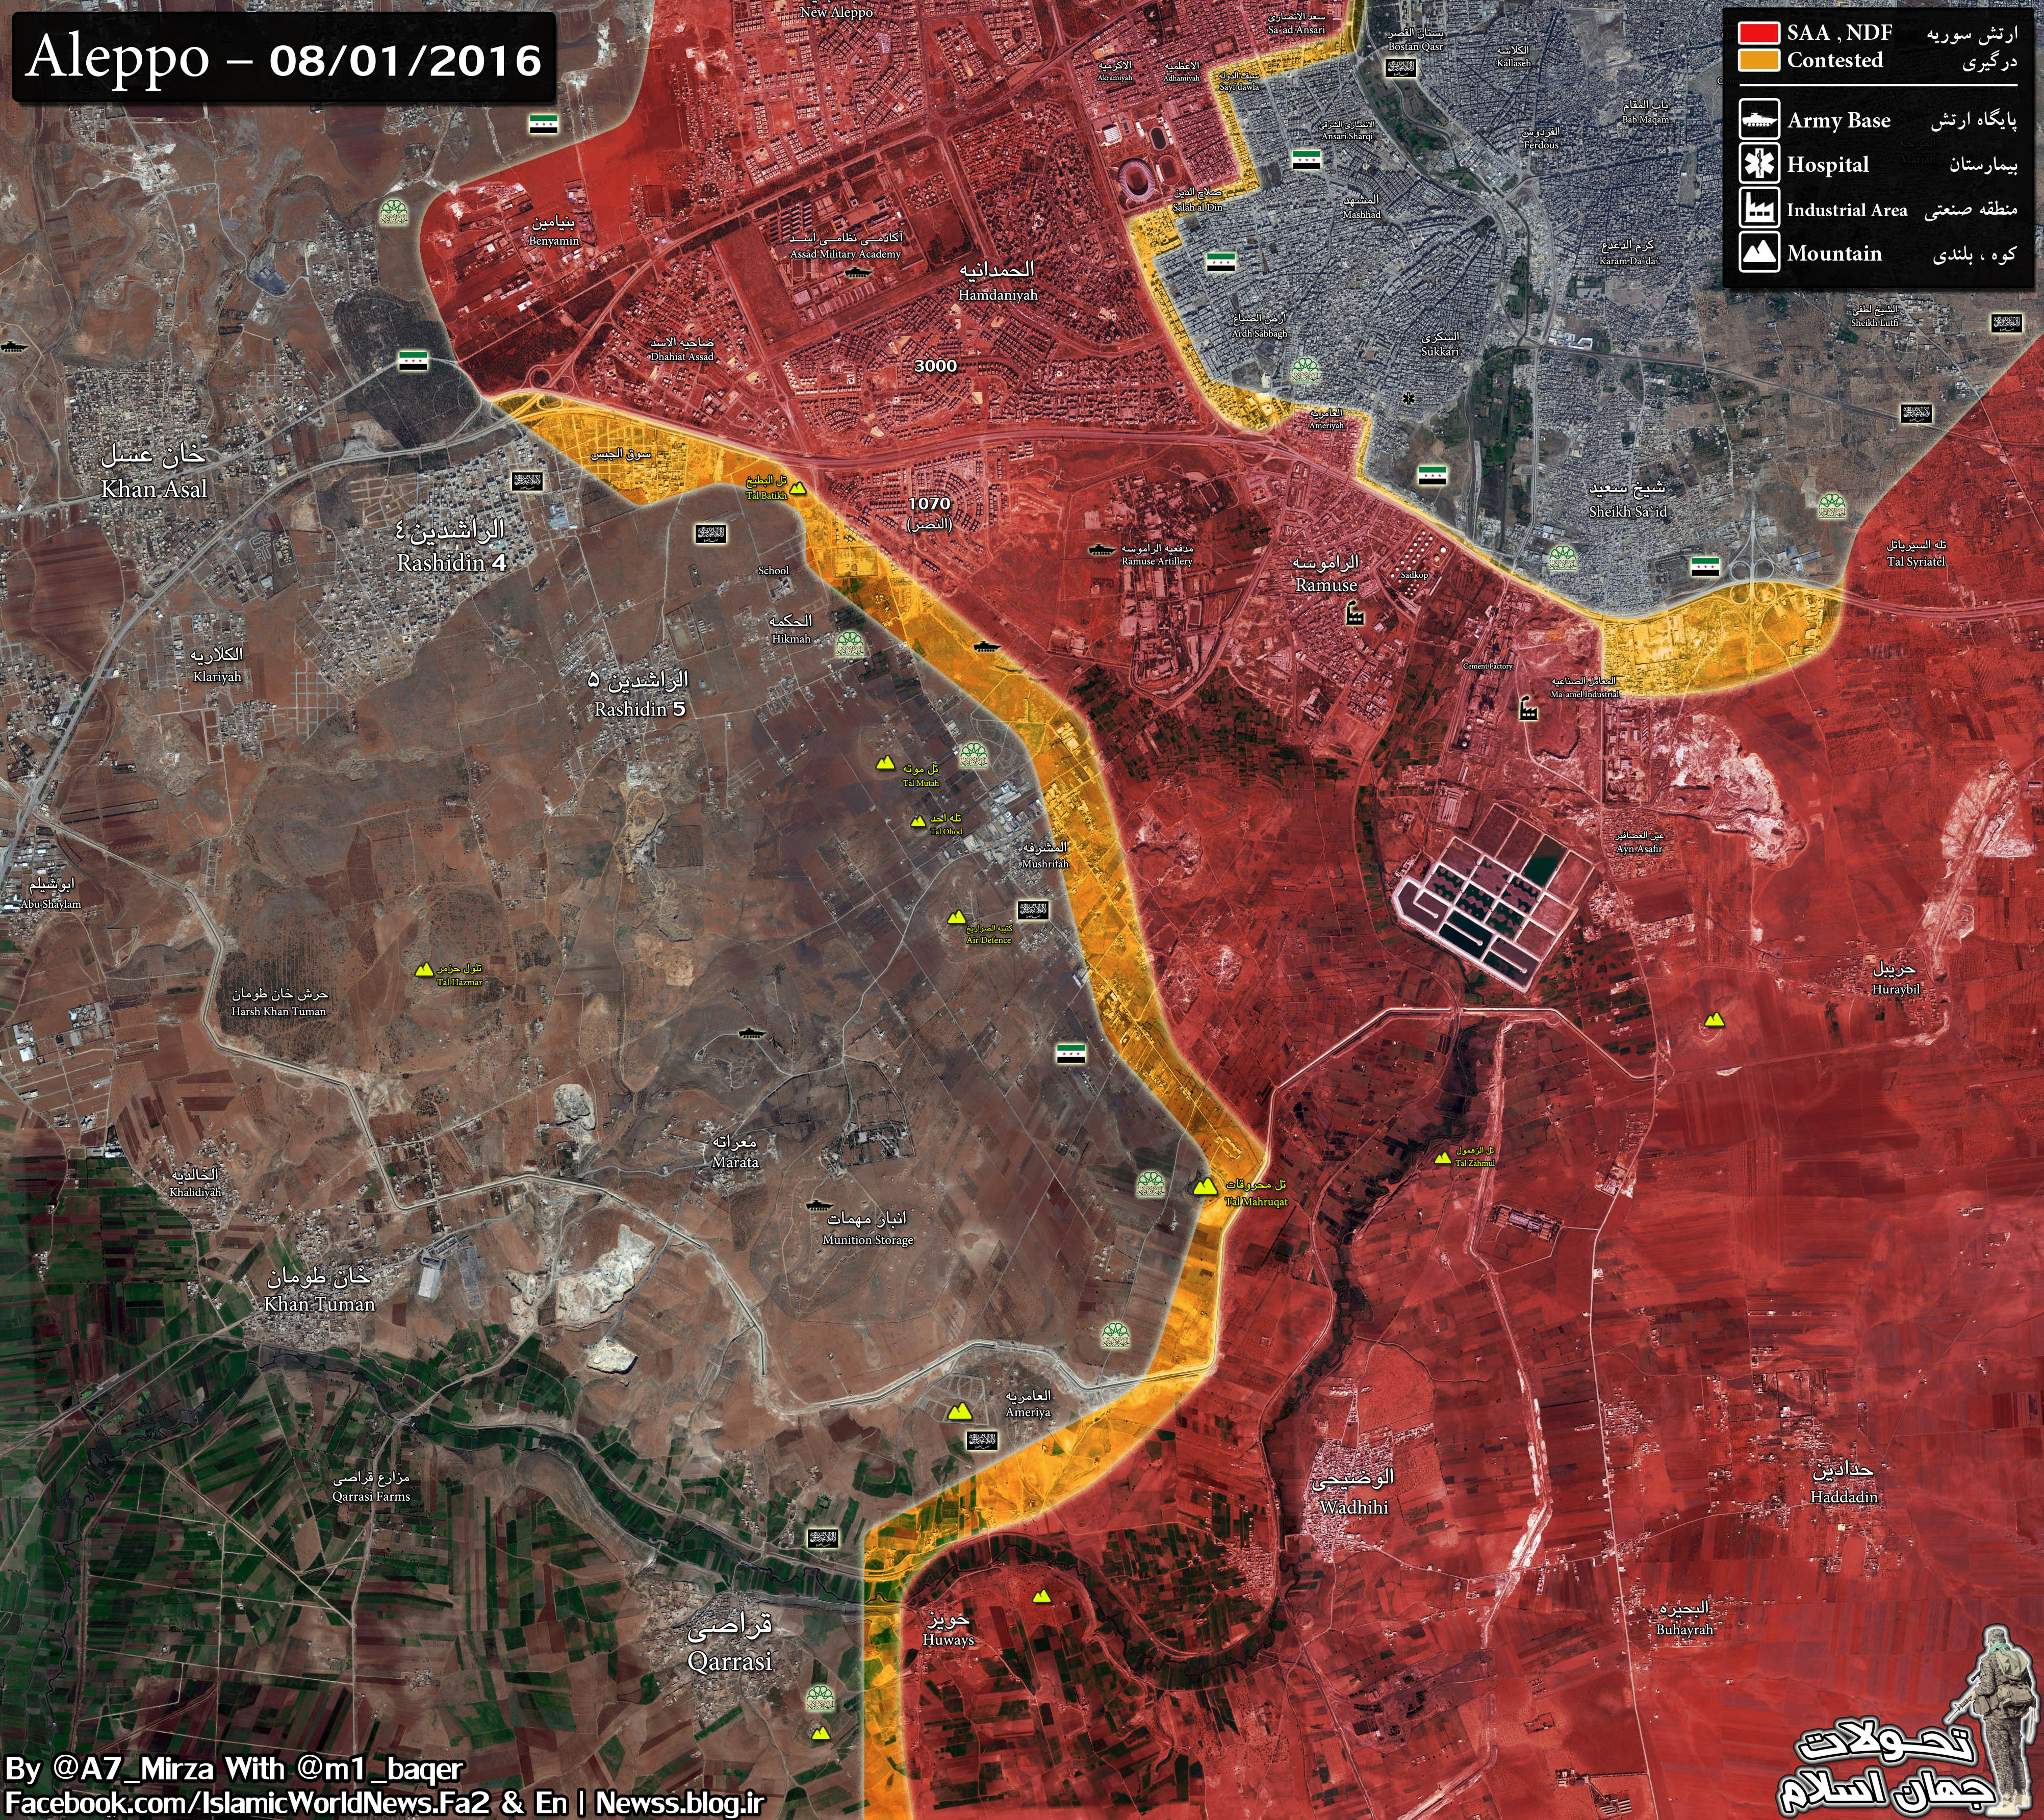 Syrian Army Developing Momentum in Strategic Areas of Aleppo City